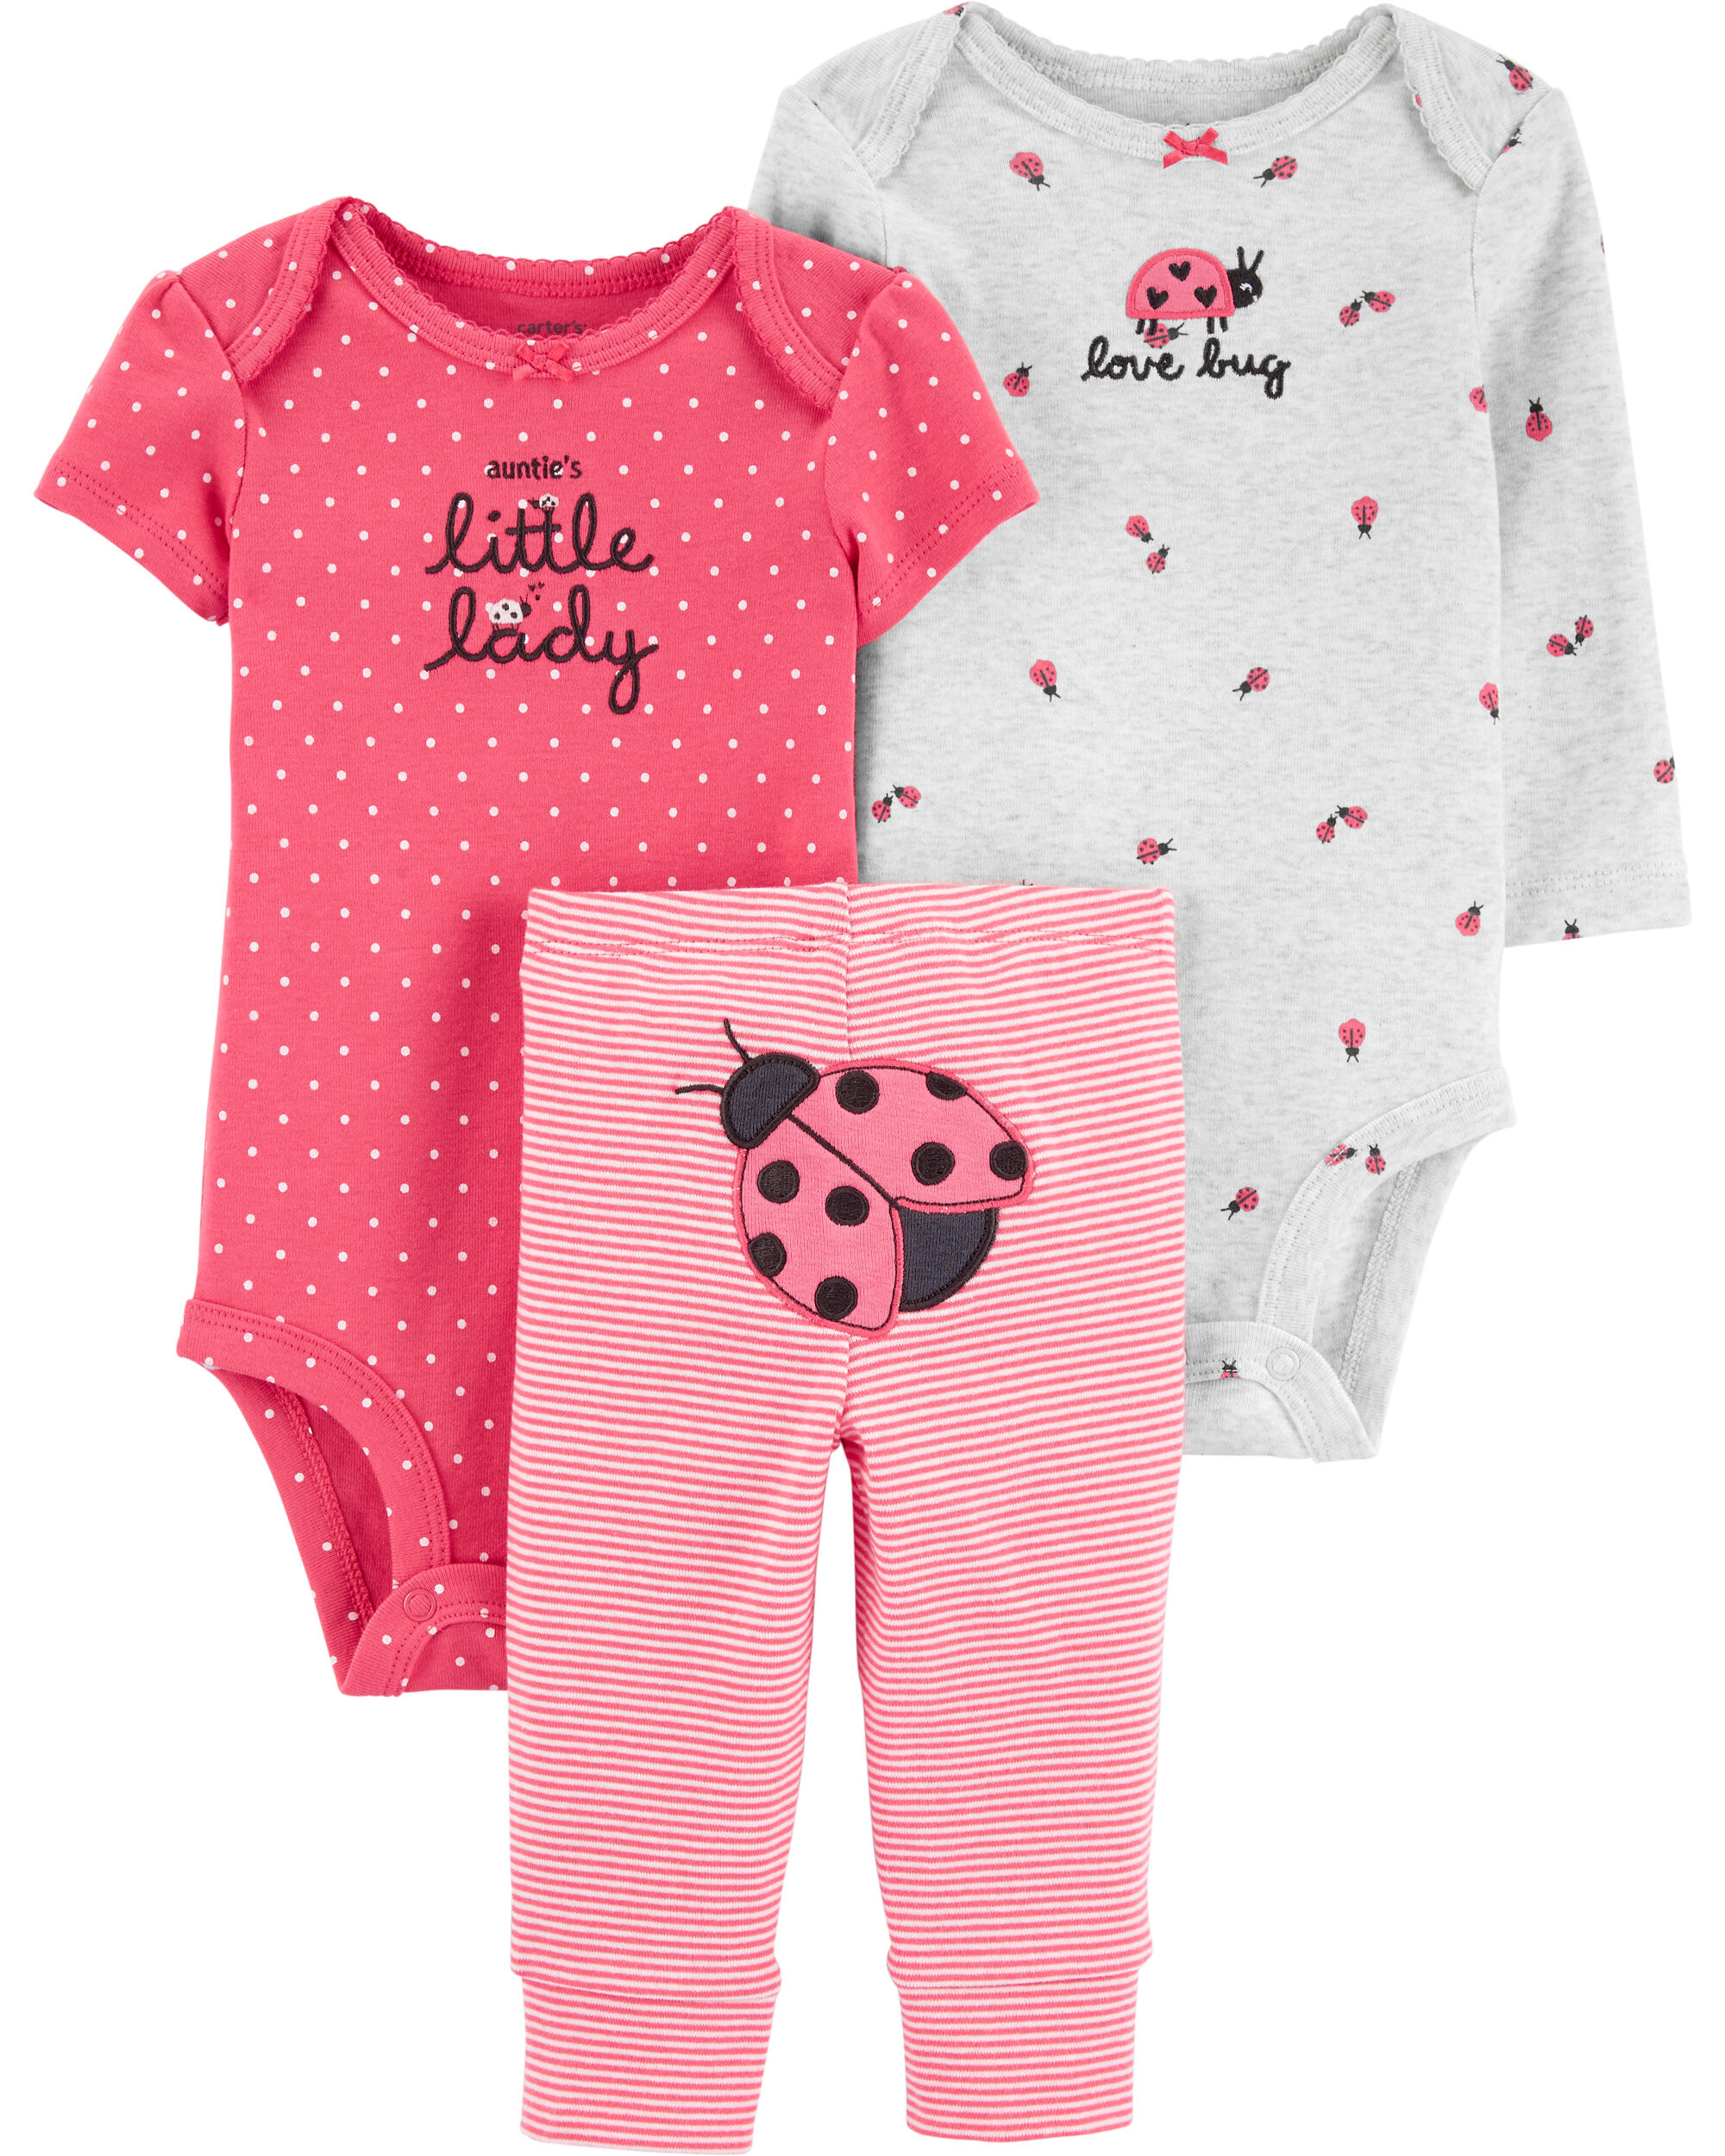 Quiltex 3-Piece Baby Girl Set Love You to The Moon Overall//Bodysuit//Bib Pink 3-6M